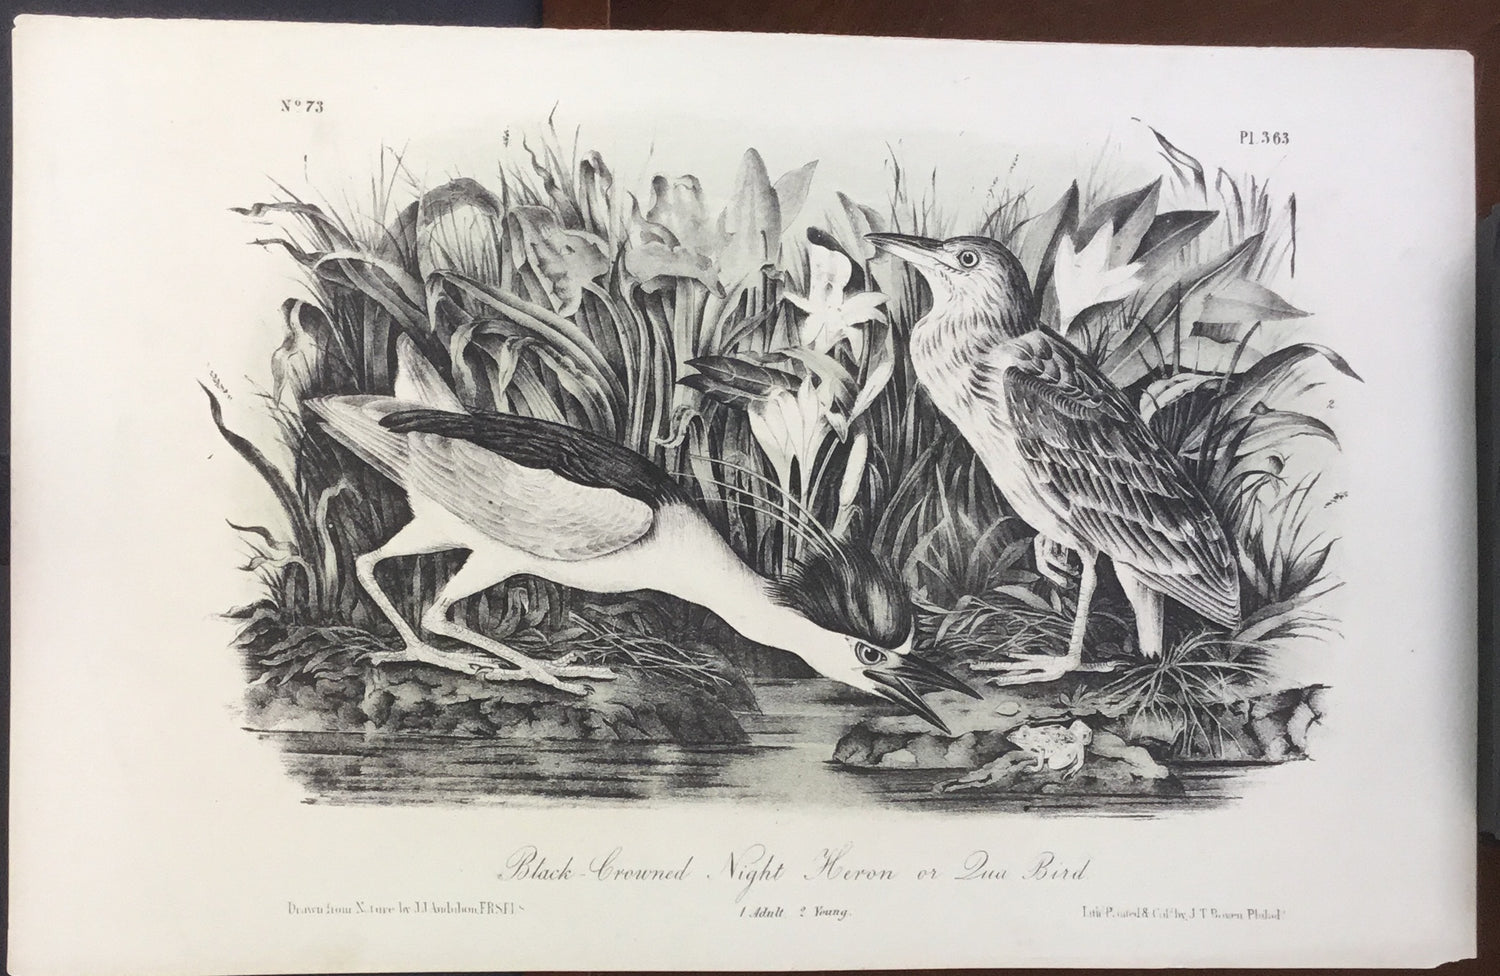 Audubon Octavo Black-crowned Night Heron or Qua Bird, plate 363, uncolored test sheet, 7 x 11